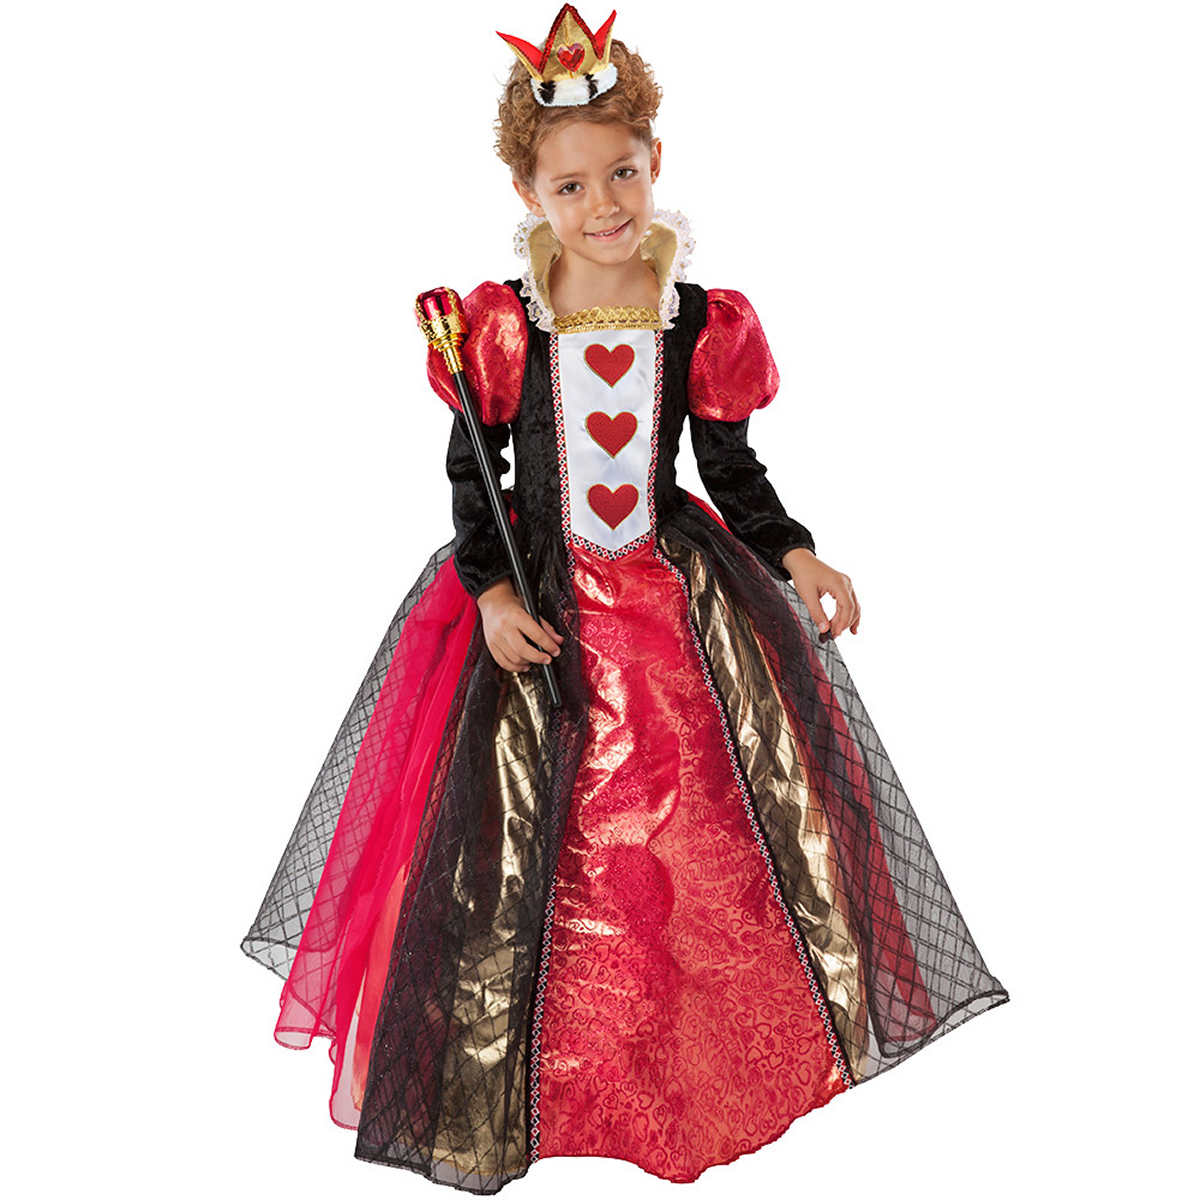 queen of hearts costume - Utah Halloween Stores